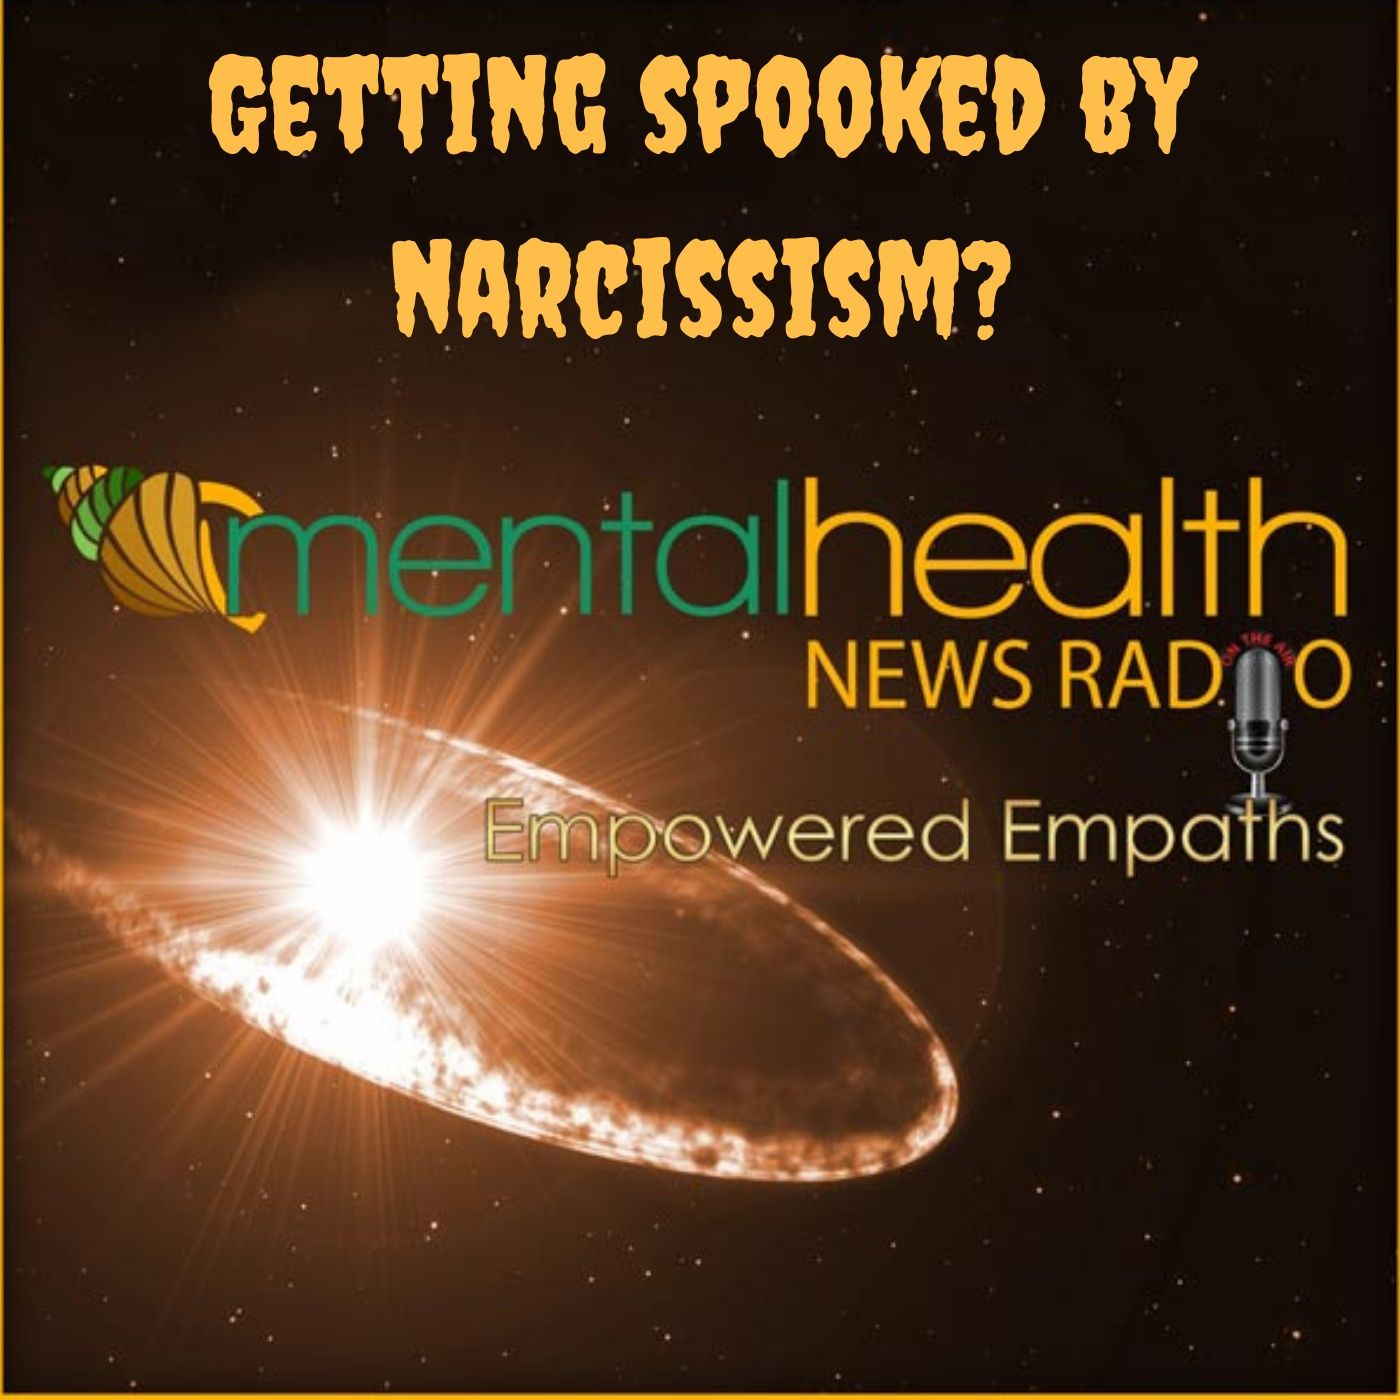 Mental Health News Radio - Empowered Empaths: Getting Spooked By Narcissism?